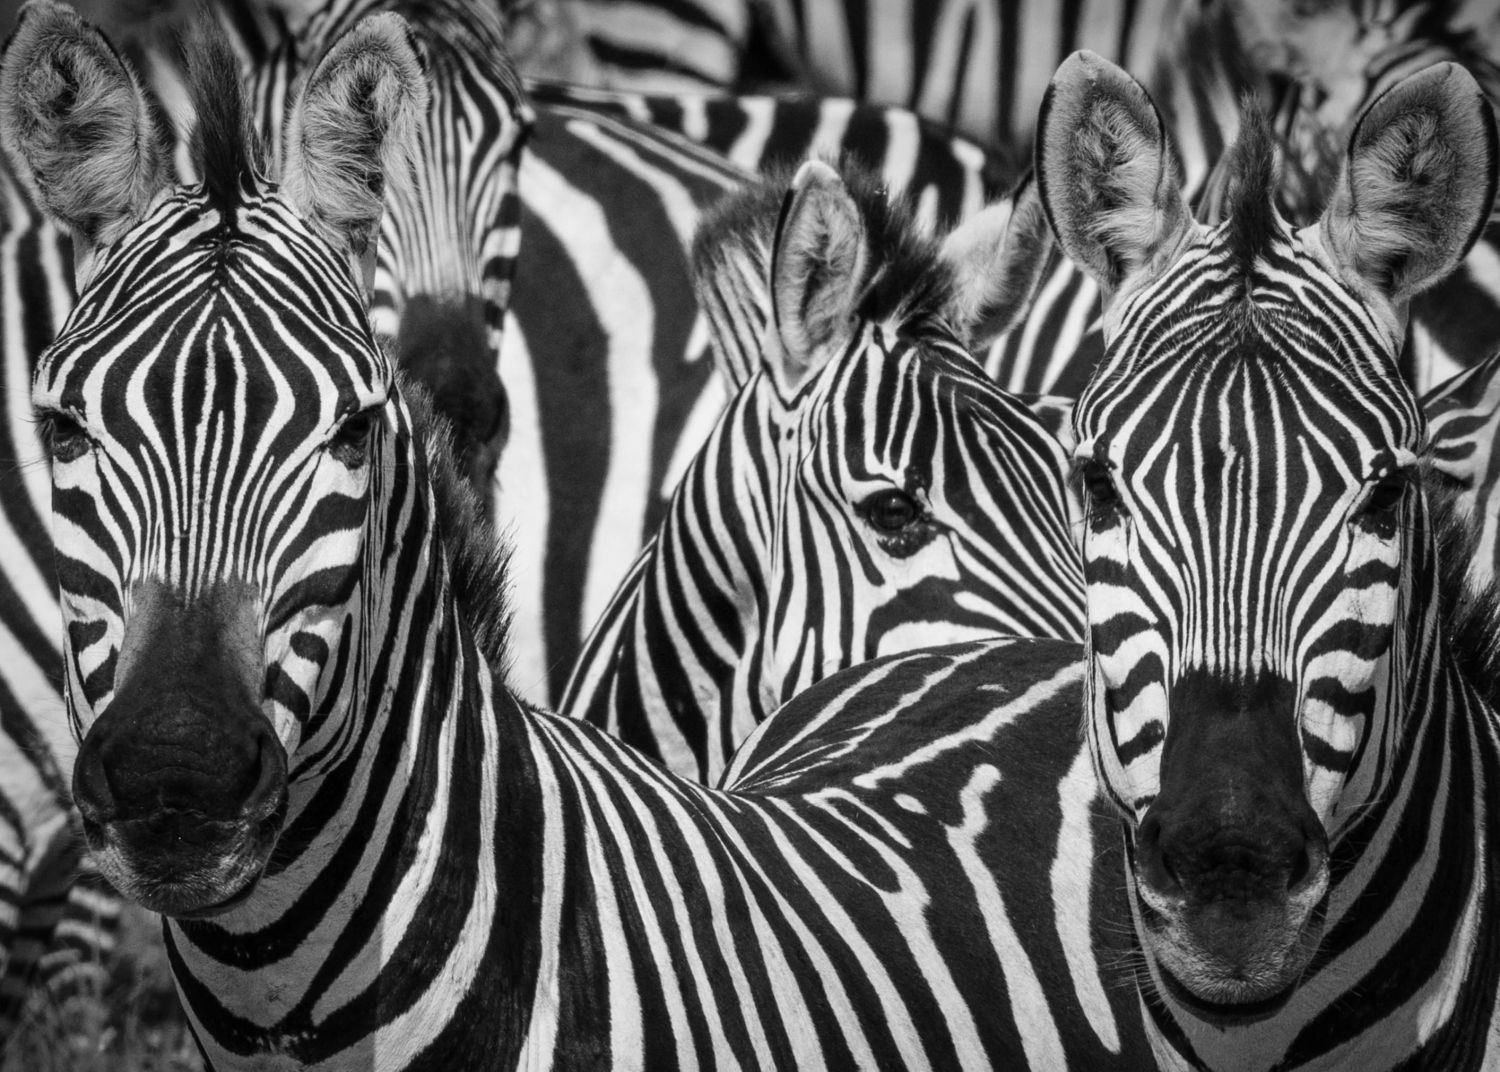 Watching_Zebras_Watching_You_2.jpg